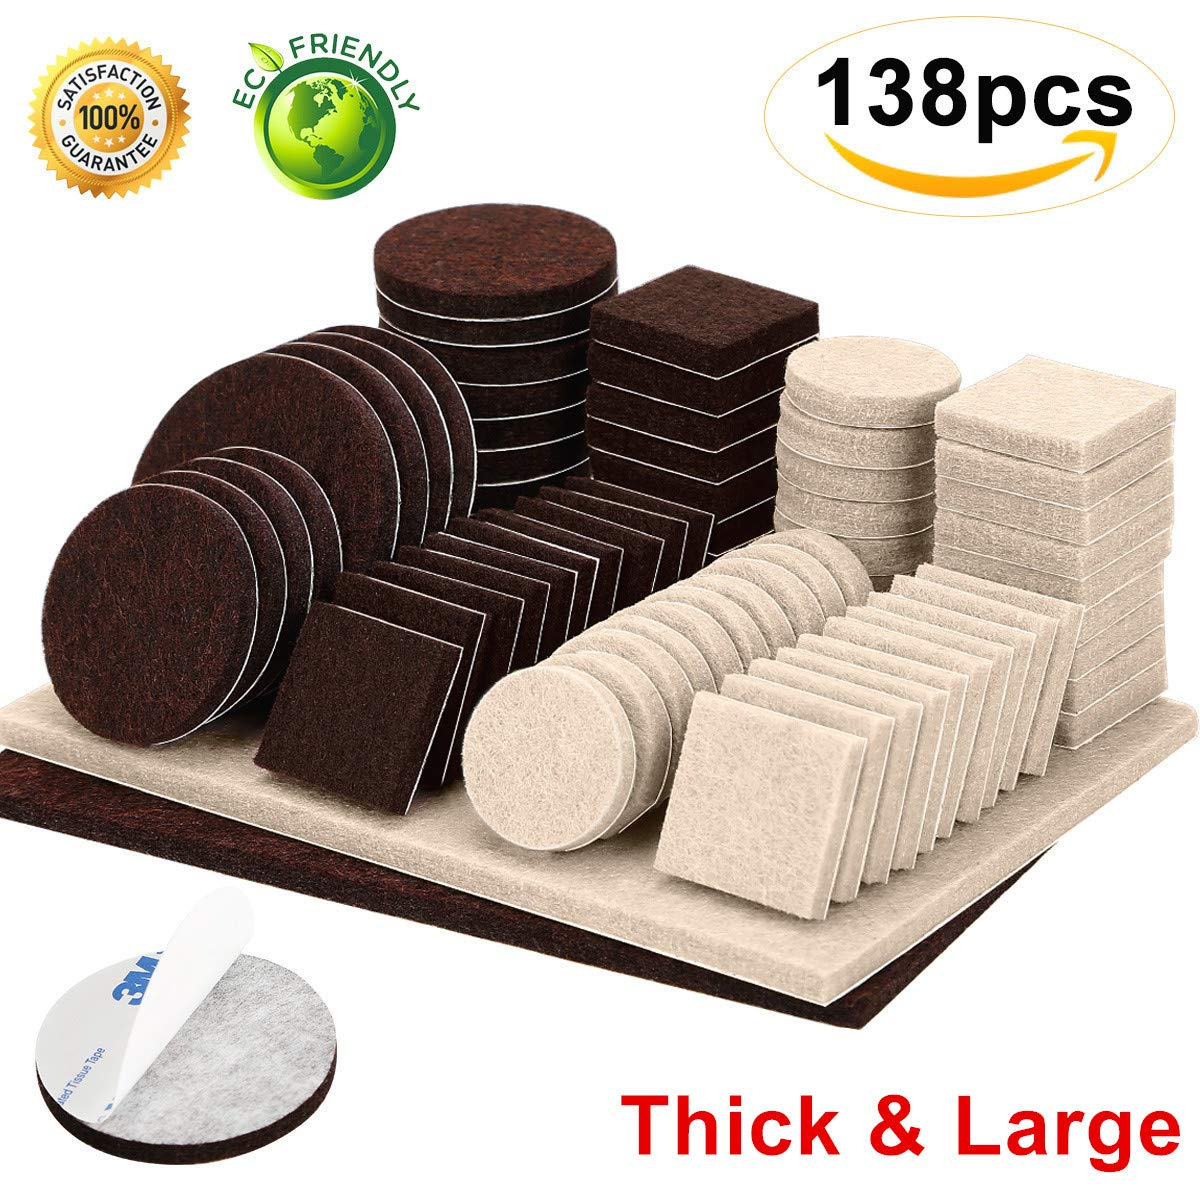 Furniture Pads 138 Pieces Two Colors Pack Felt Furniture Pads Self Stick Anti Scratch Felt Chair Pads Brown and Beige Floors Protector for Hardwood Wood Floor